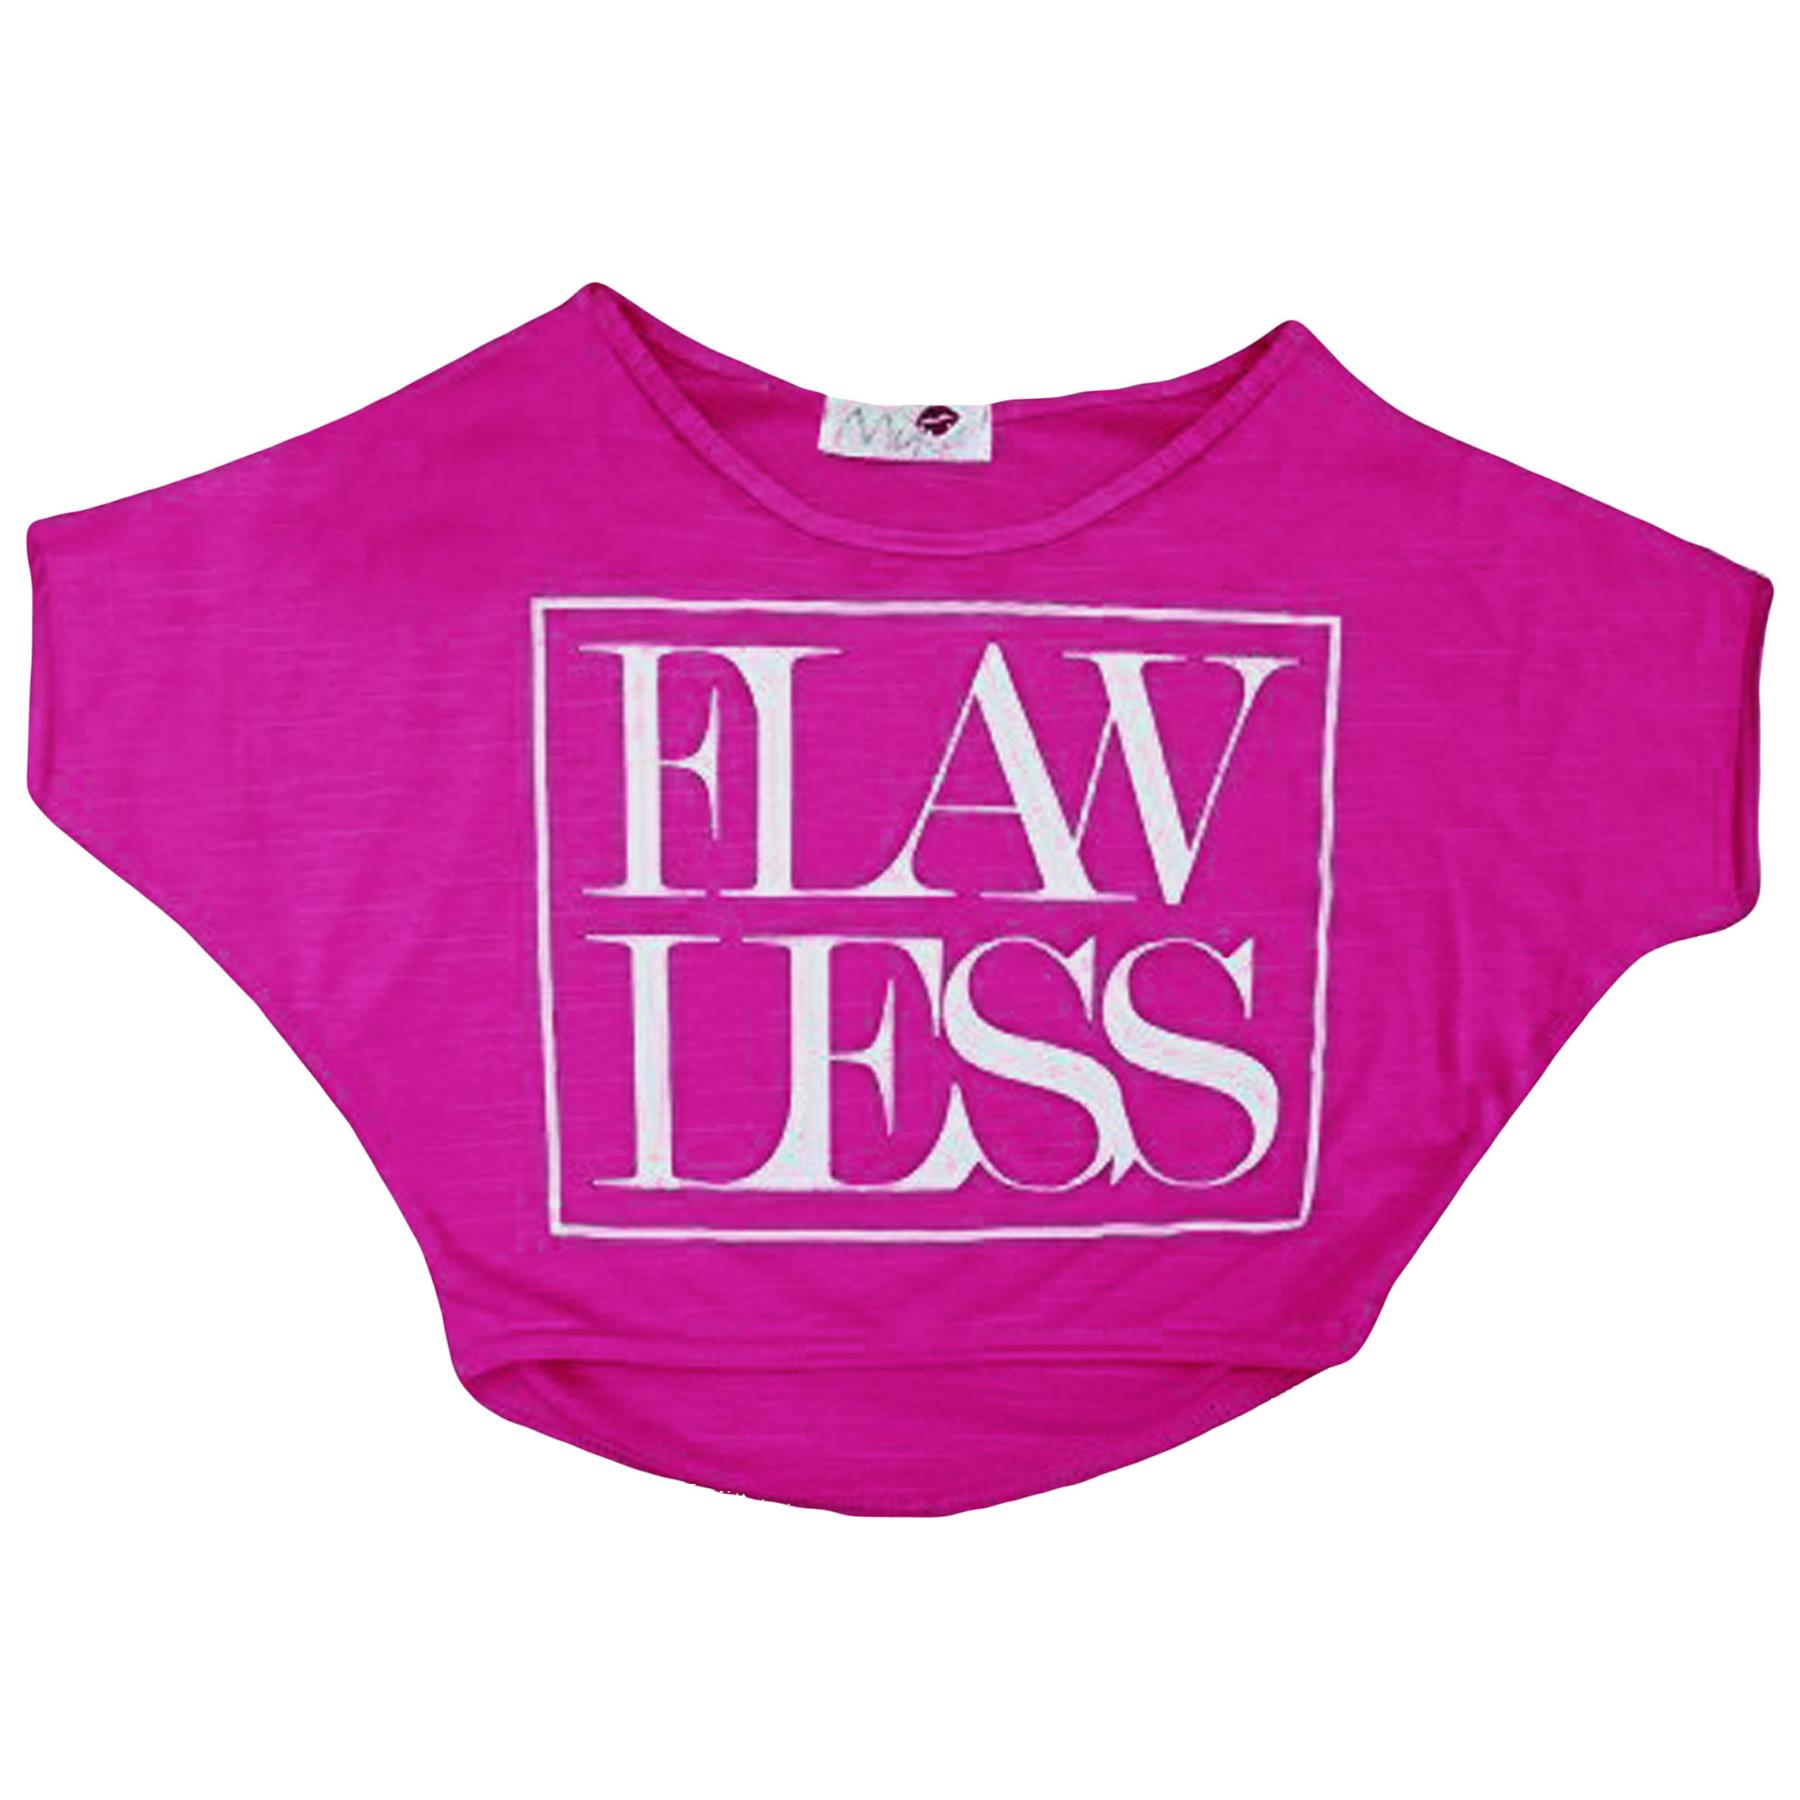 Kids-Girls-New-Season-034-FLAWLESS-034-Print-Crop-Top-Stylish-Fashion-T-Shirt-Age-7-13 miniatuur 16